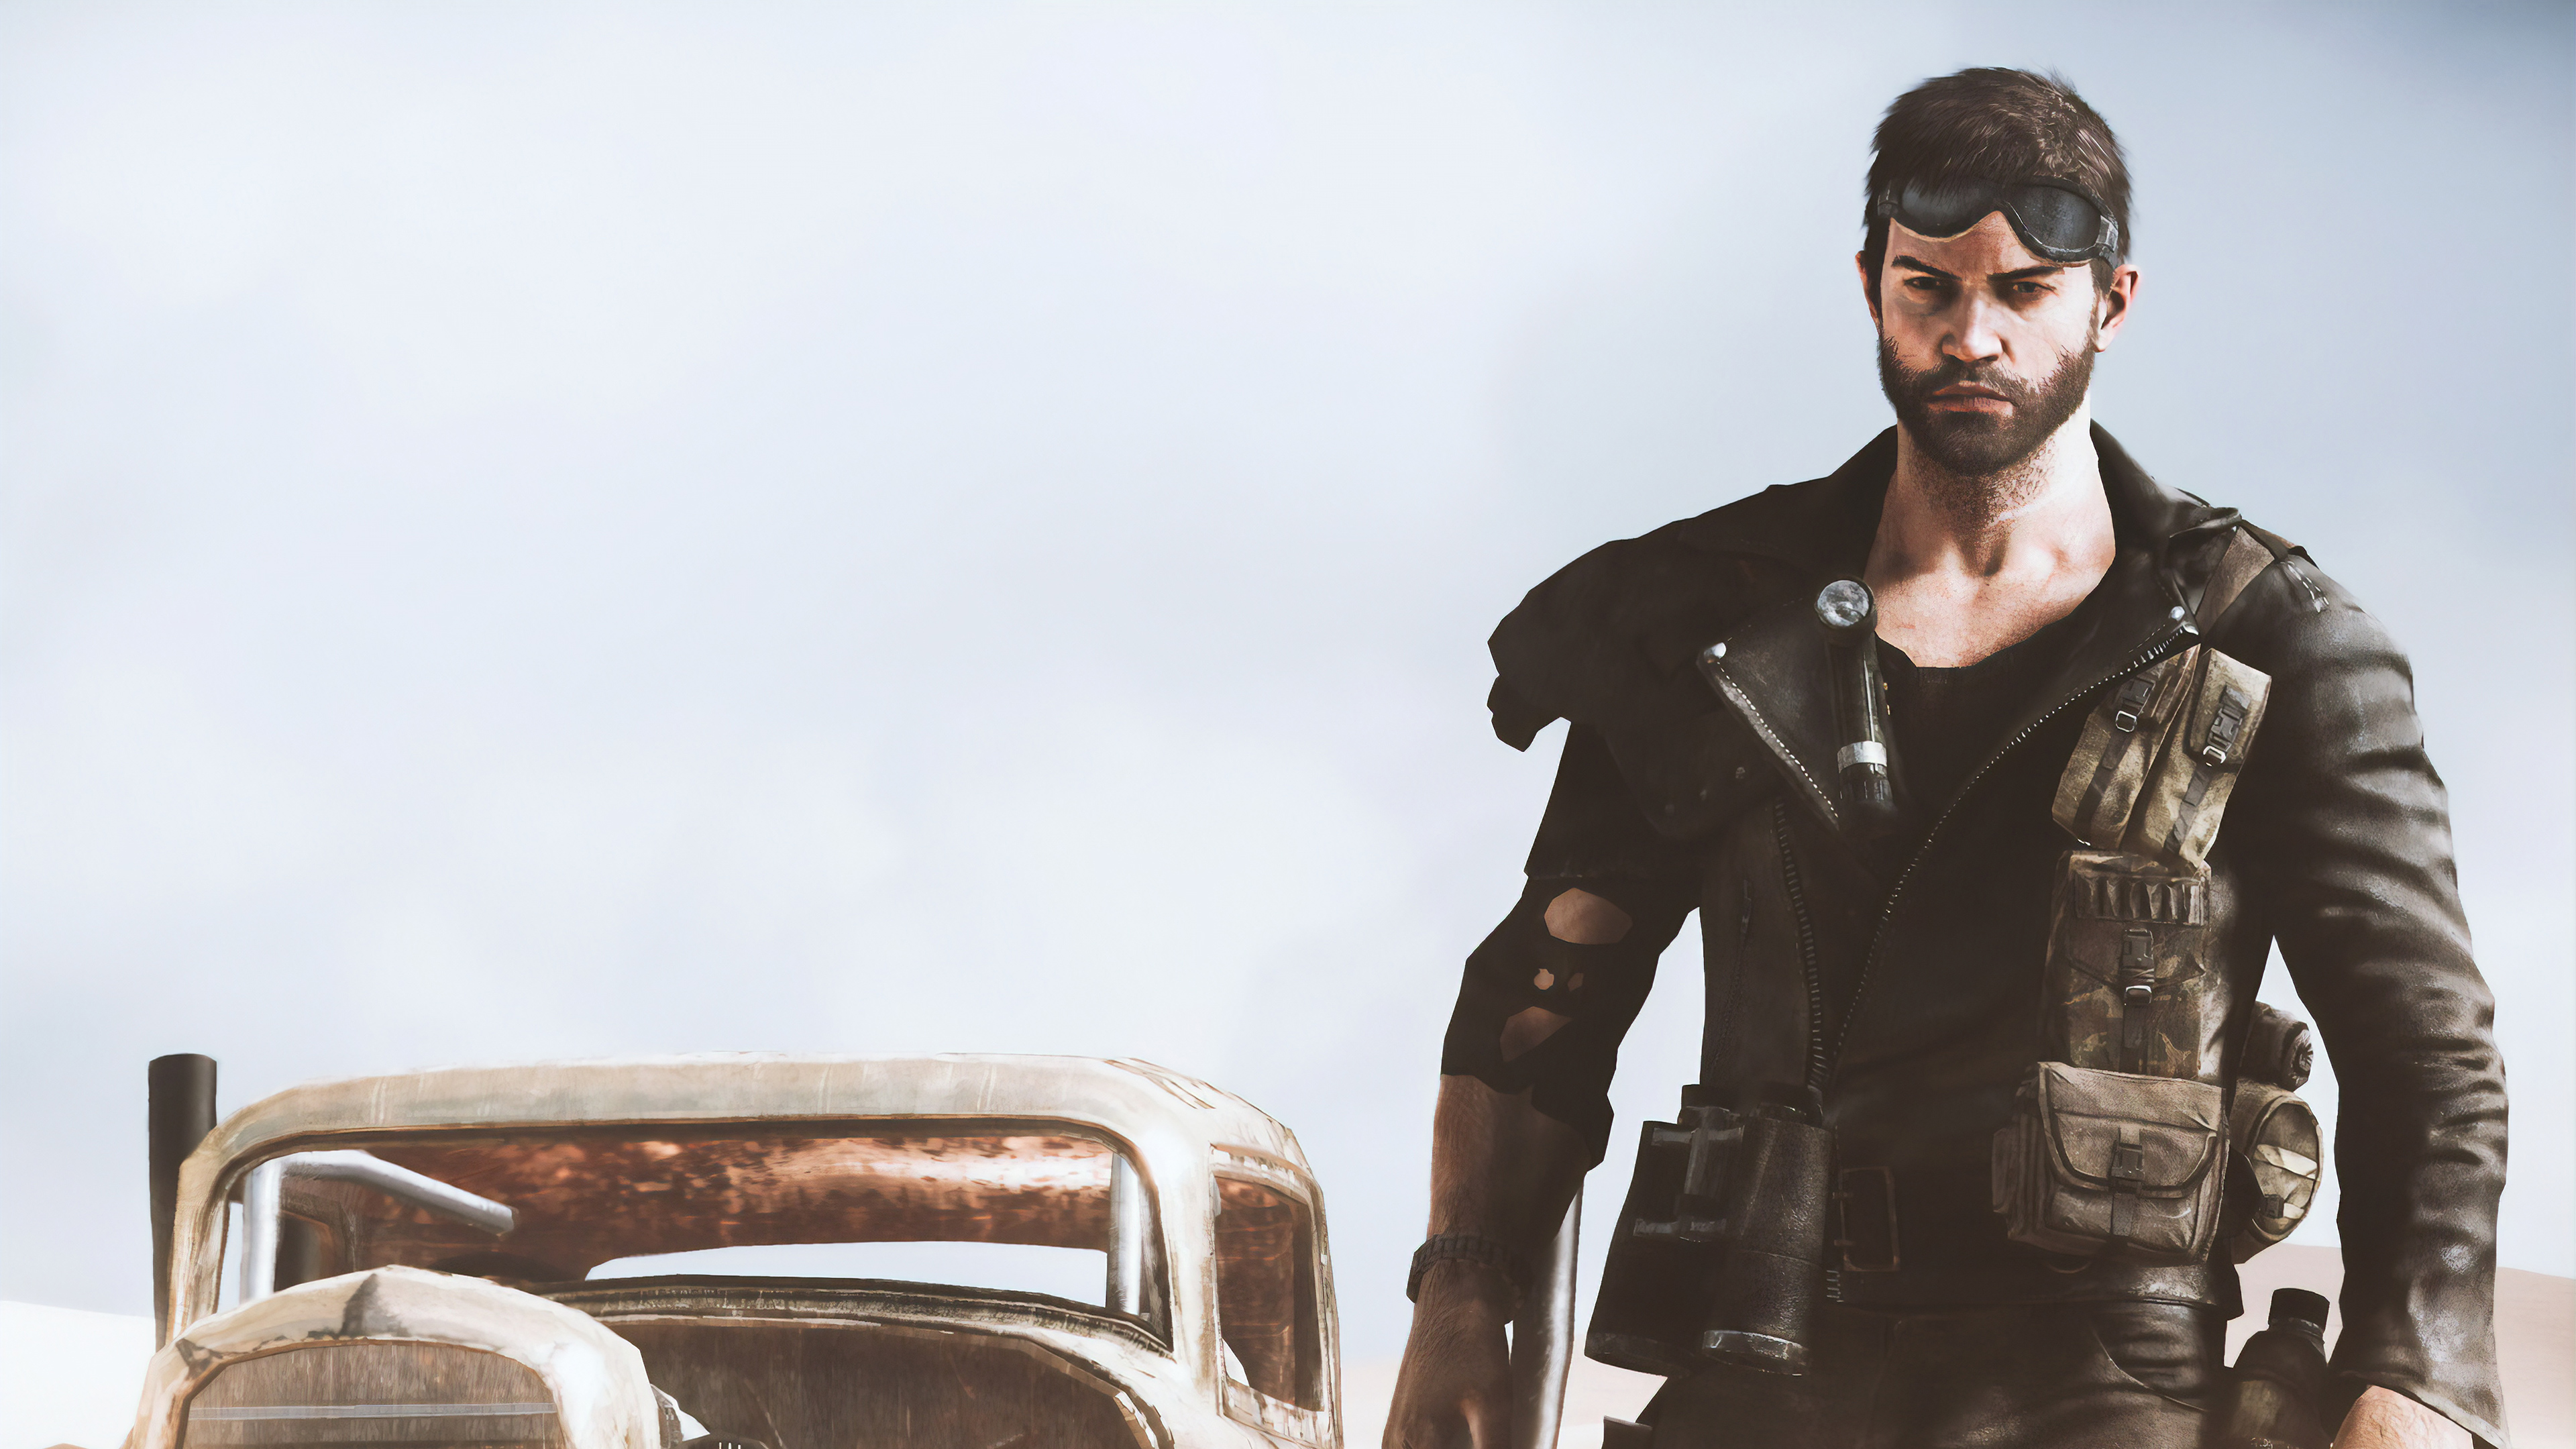 mad max video game 1565054259 - Mad Max Video Game - mad max wallpapers, hd-wallpapers, games wallpapers, 4k-wallpapers